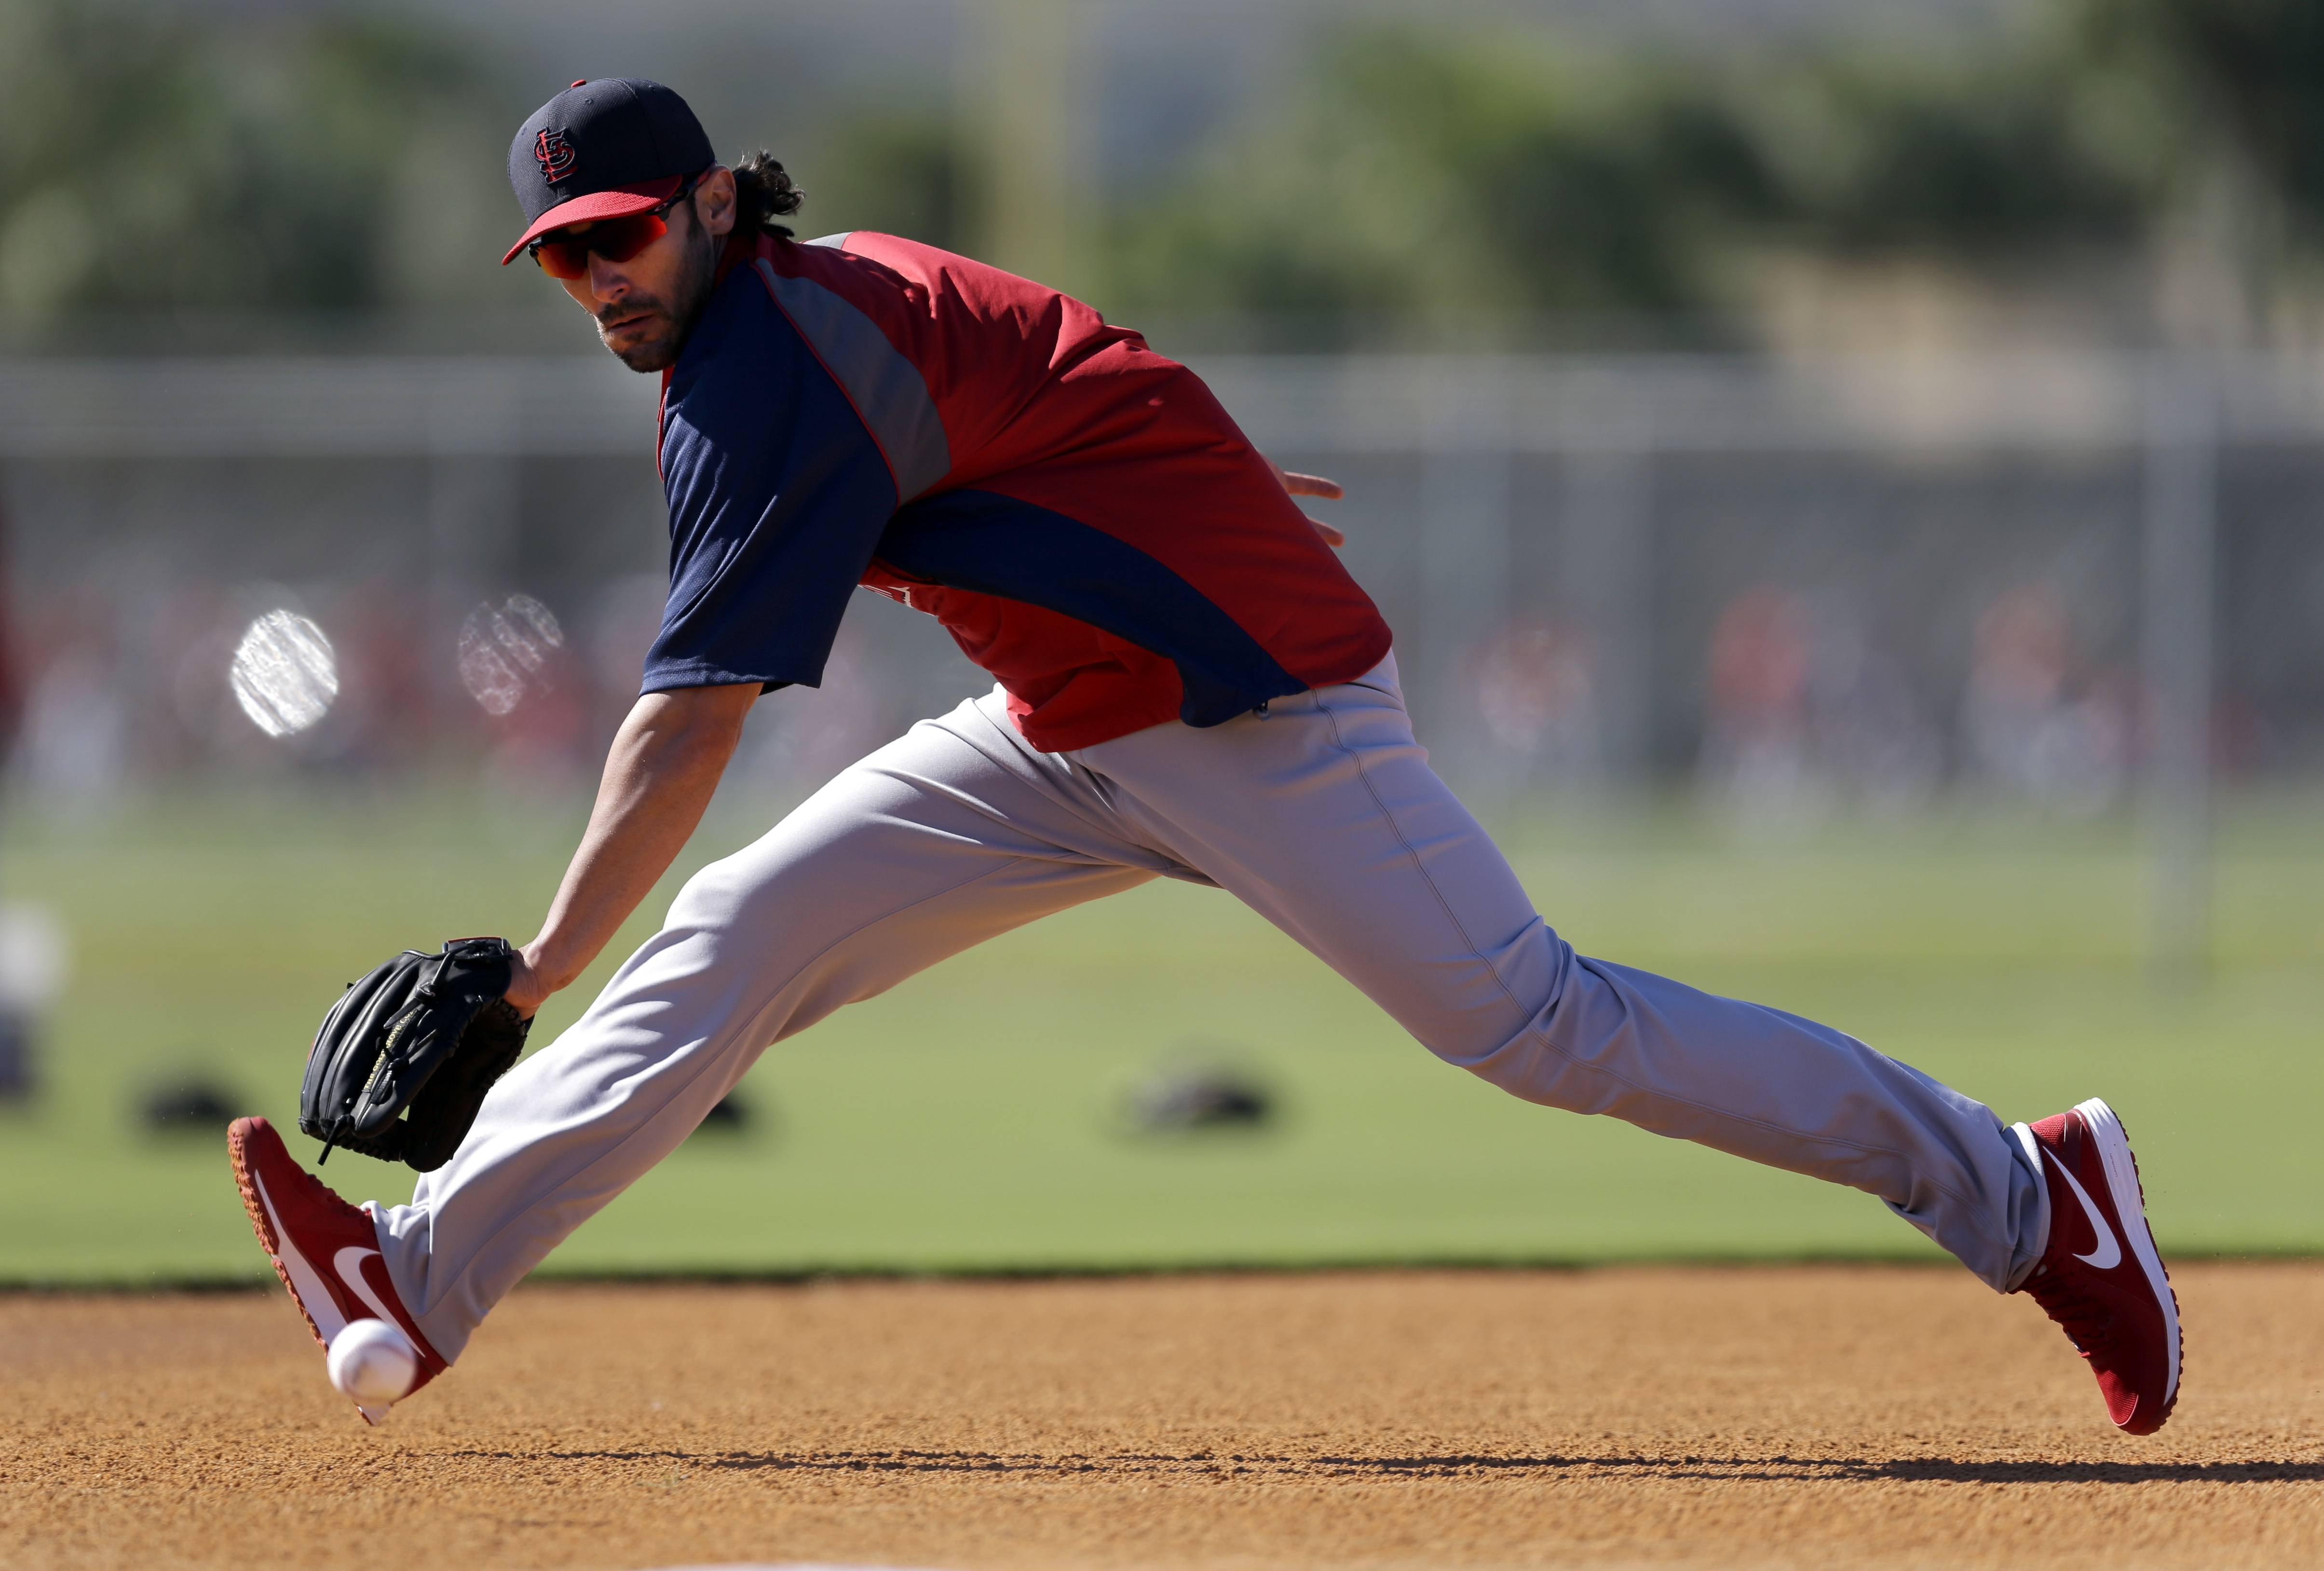 St. Louis Cardinals infielder Matt Carpenter handles a grounder during spring training practice Sunday in Jupiter, Fla.